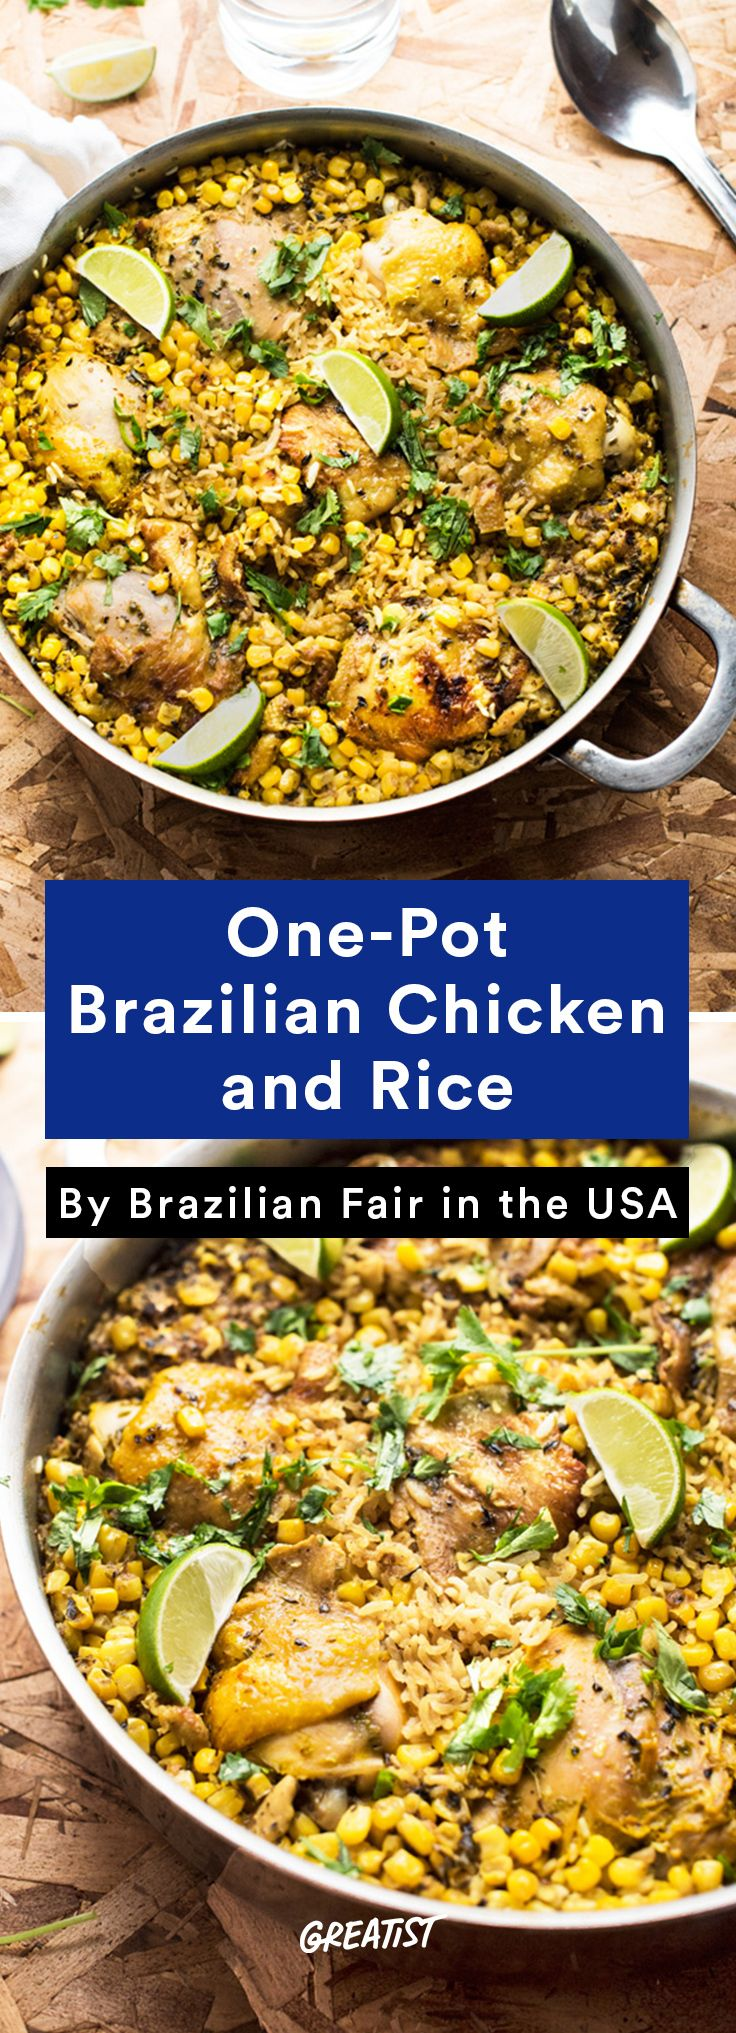 One-Pot Brazilian Chicken and Rice